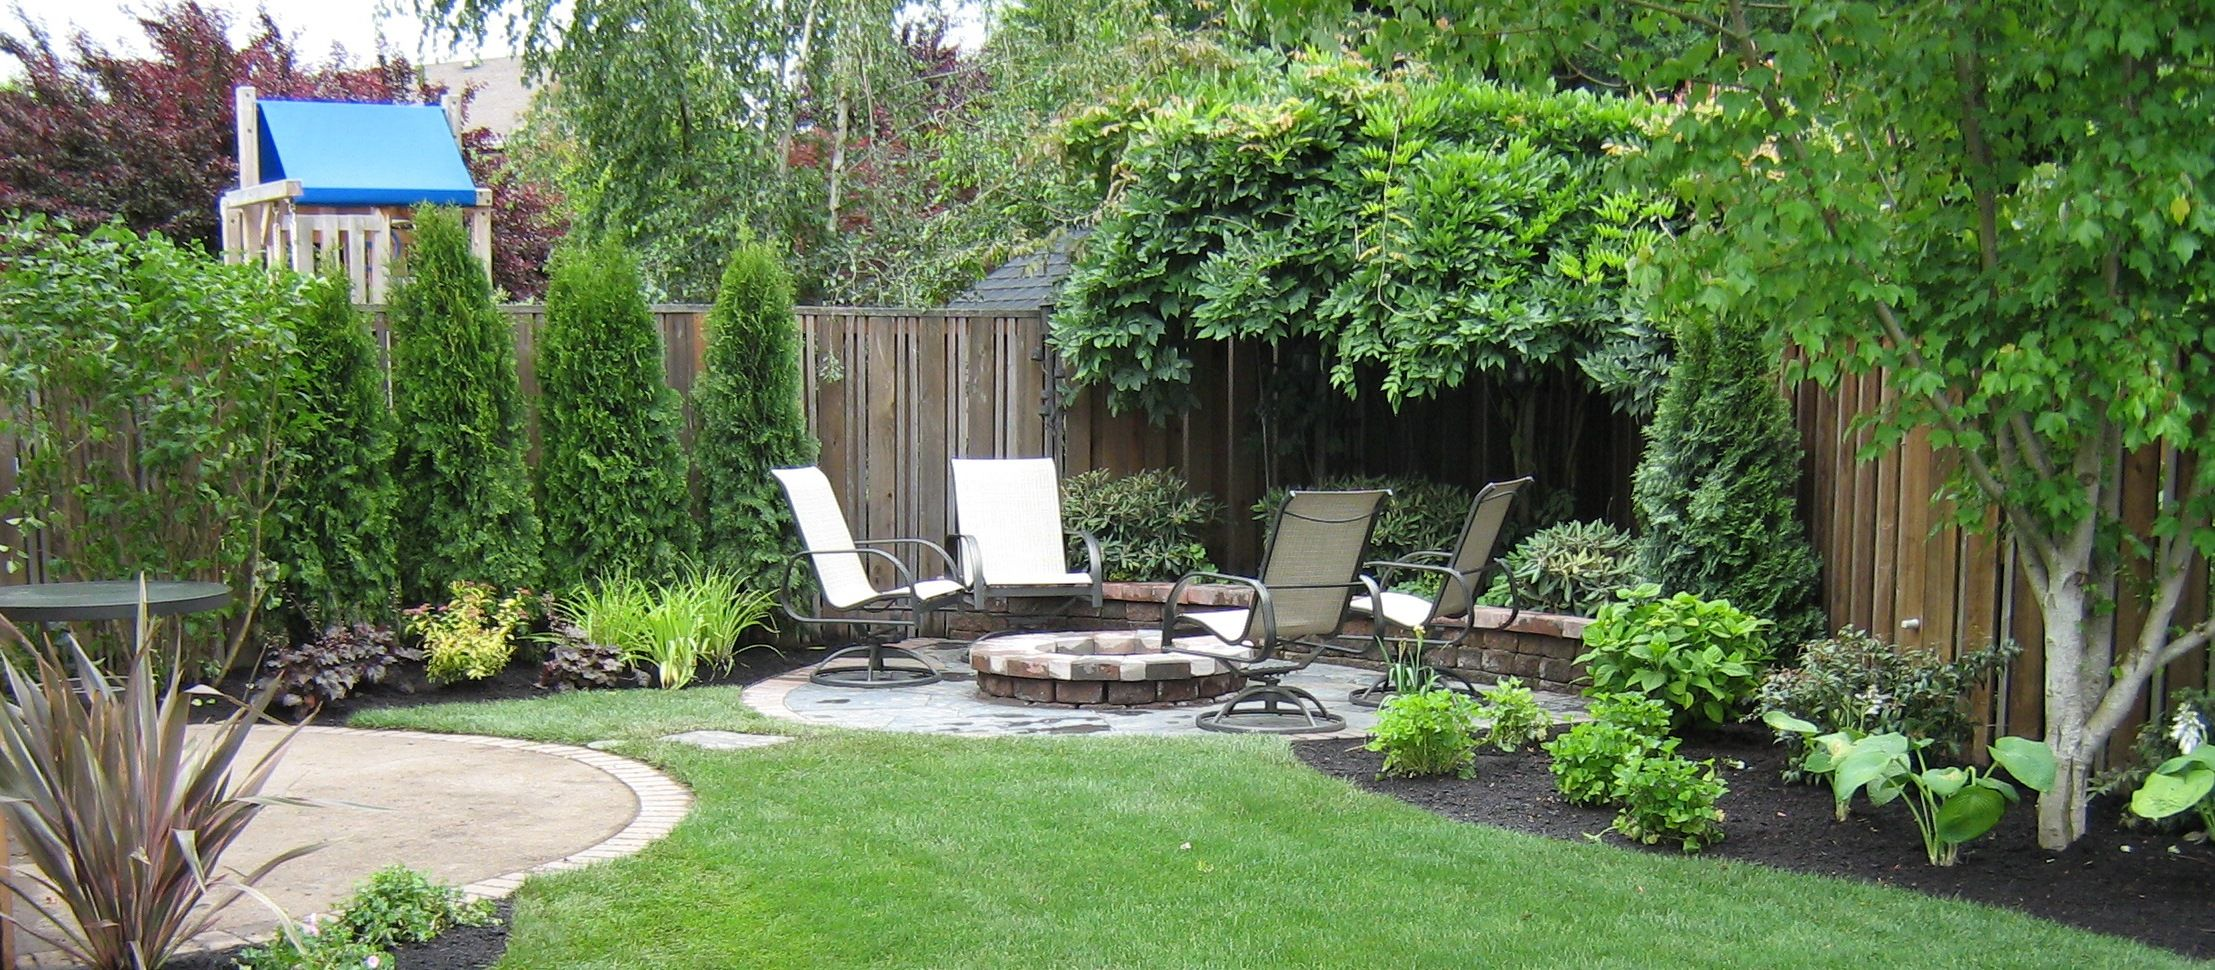 Small backyard landscaping ideas photos garden design for Outside landscaping ideas